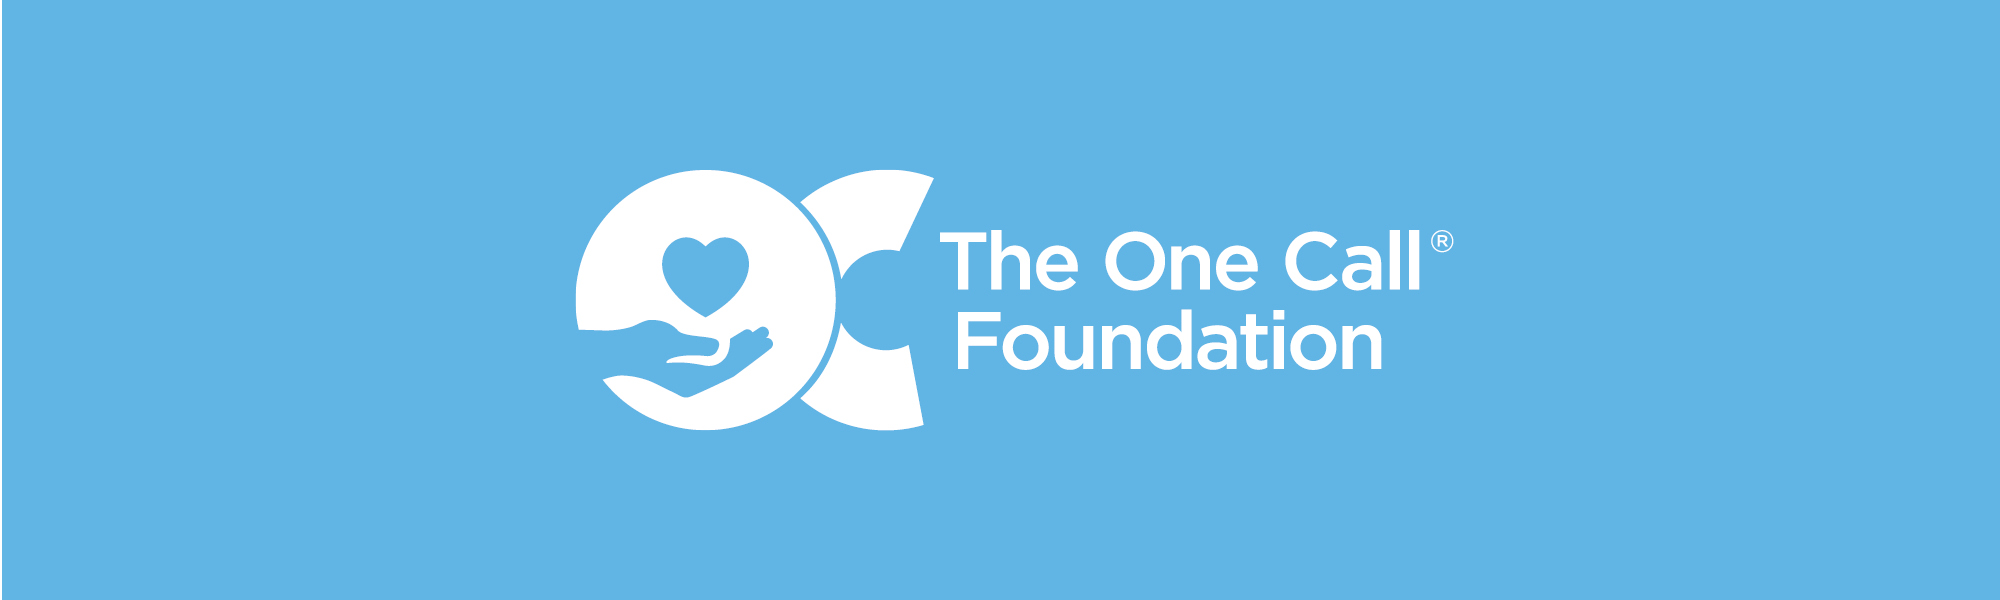 One Call Establishes The One Call Foundation to Help Employees During Their Greatest Times of Need